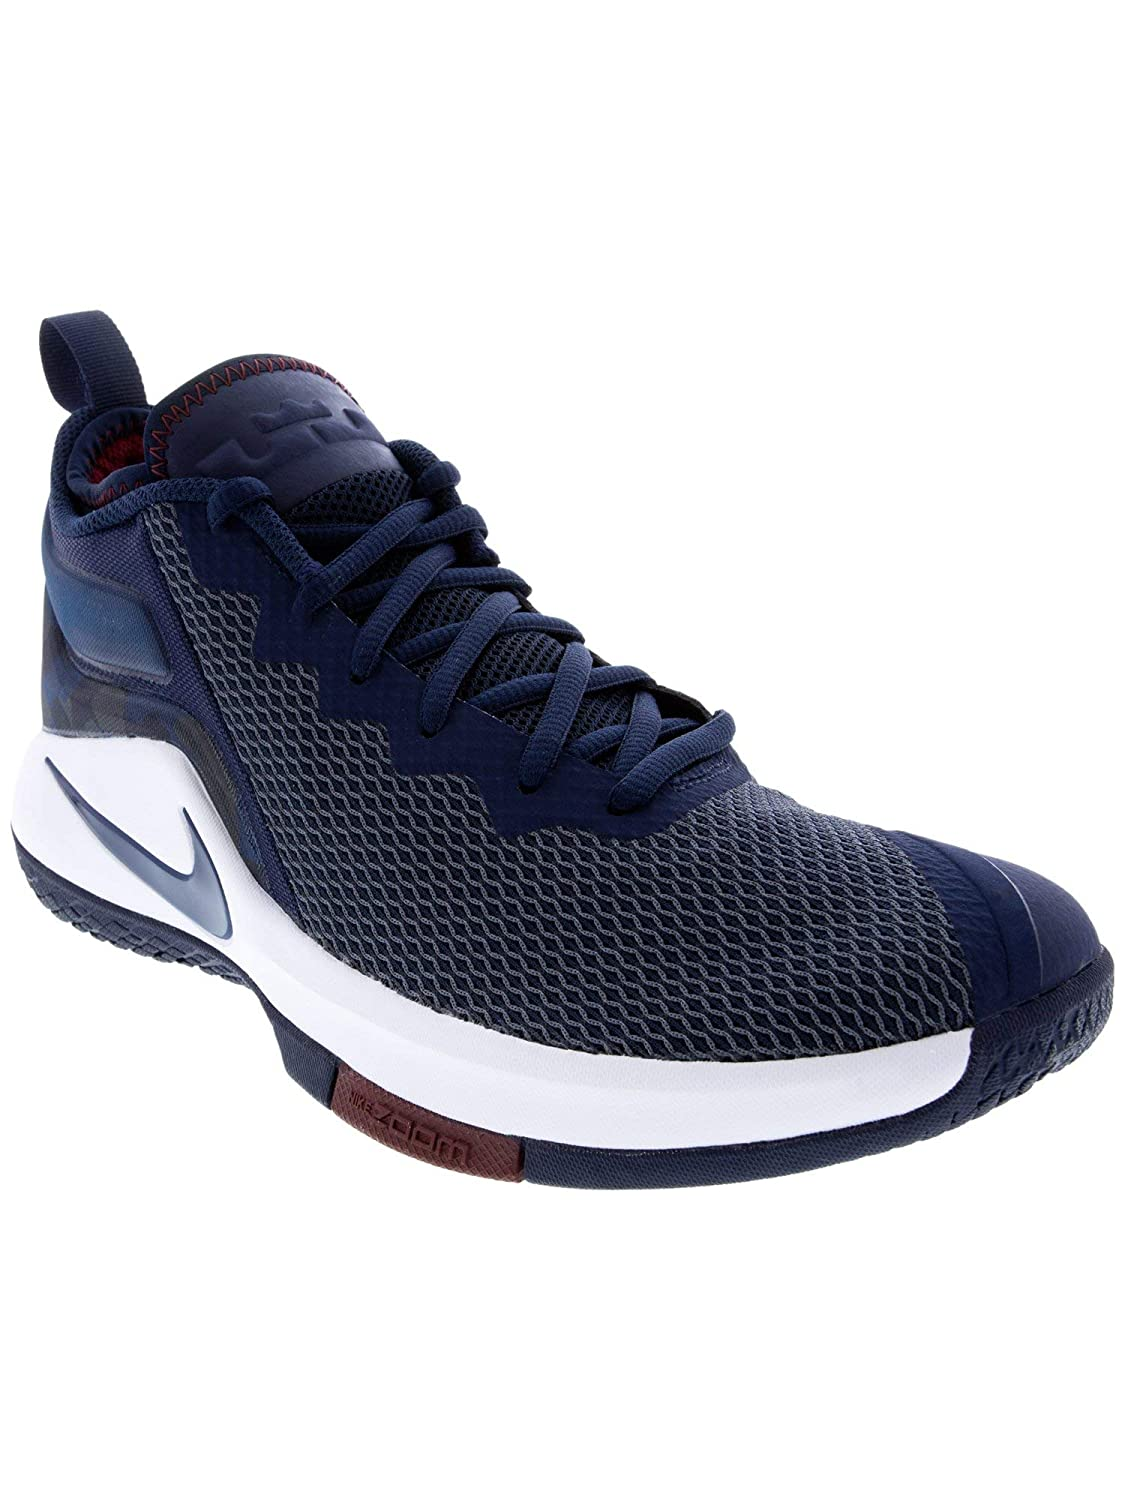 finest selection 878b3 6d3d6 Amazon.com   Nike Men s Lebron Witness II Basketball Shoe   Basketball